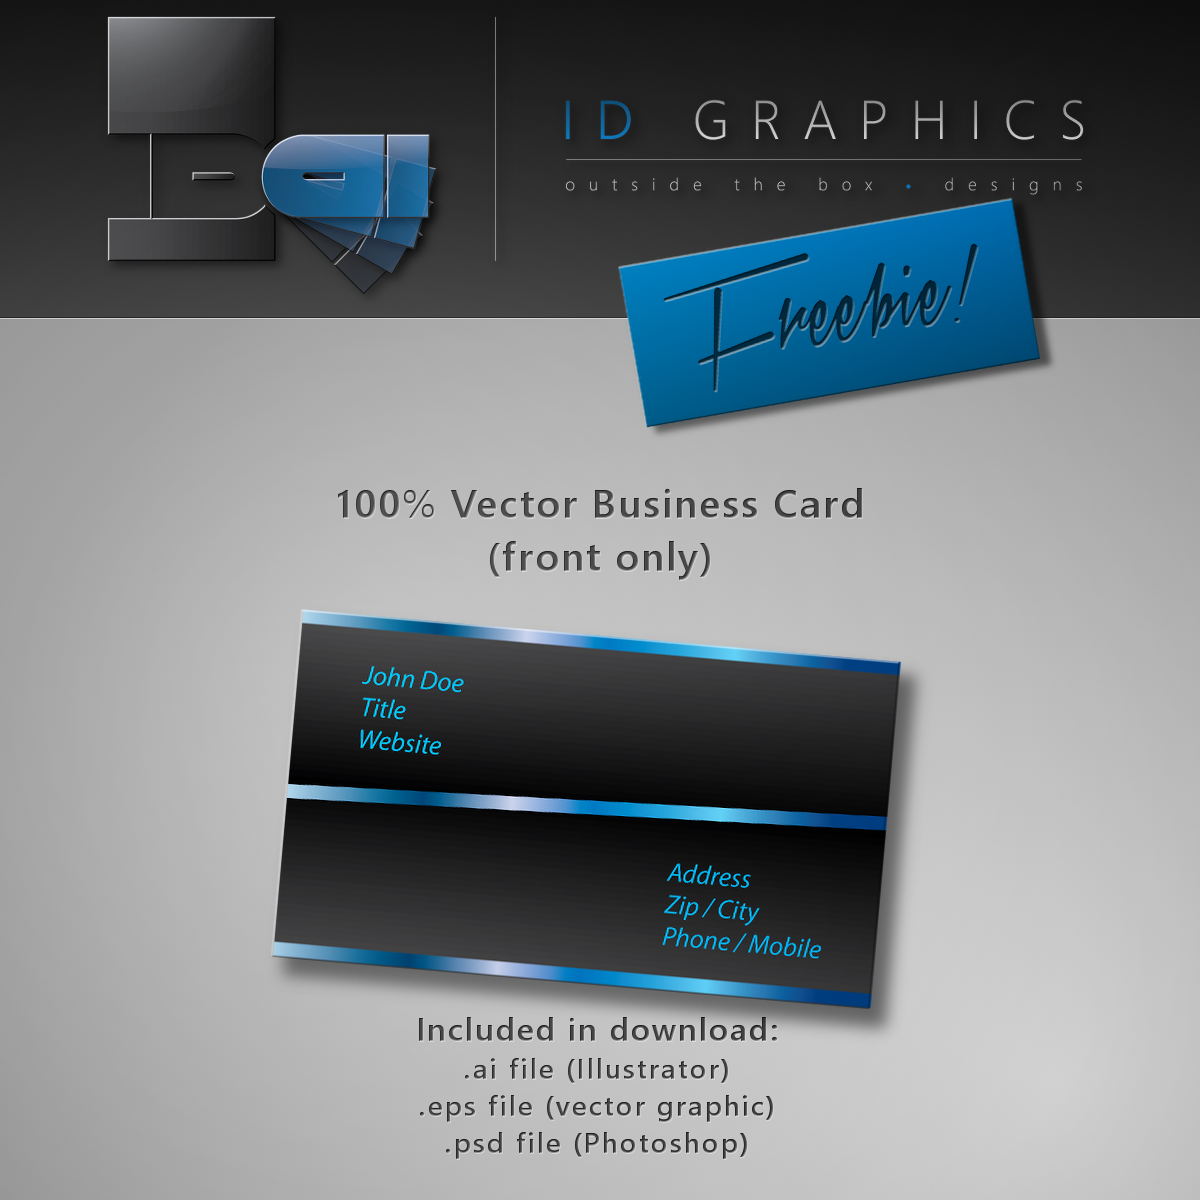 Business card black and blue glow by pixelwavecreations on deviantart pixelwavecreations business card black and blue glow by pixelwavecreations alramifo Image collections